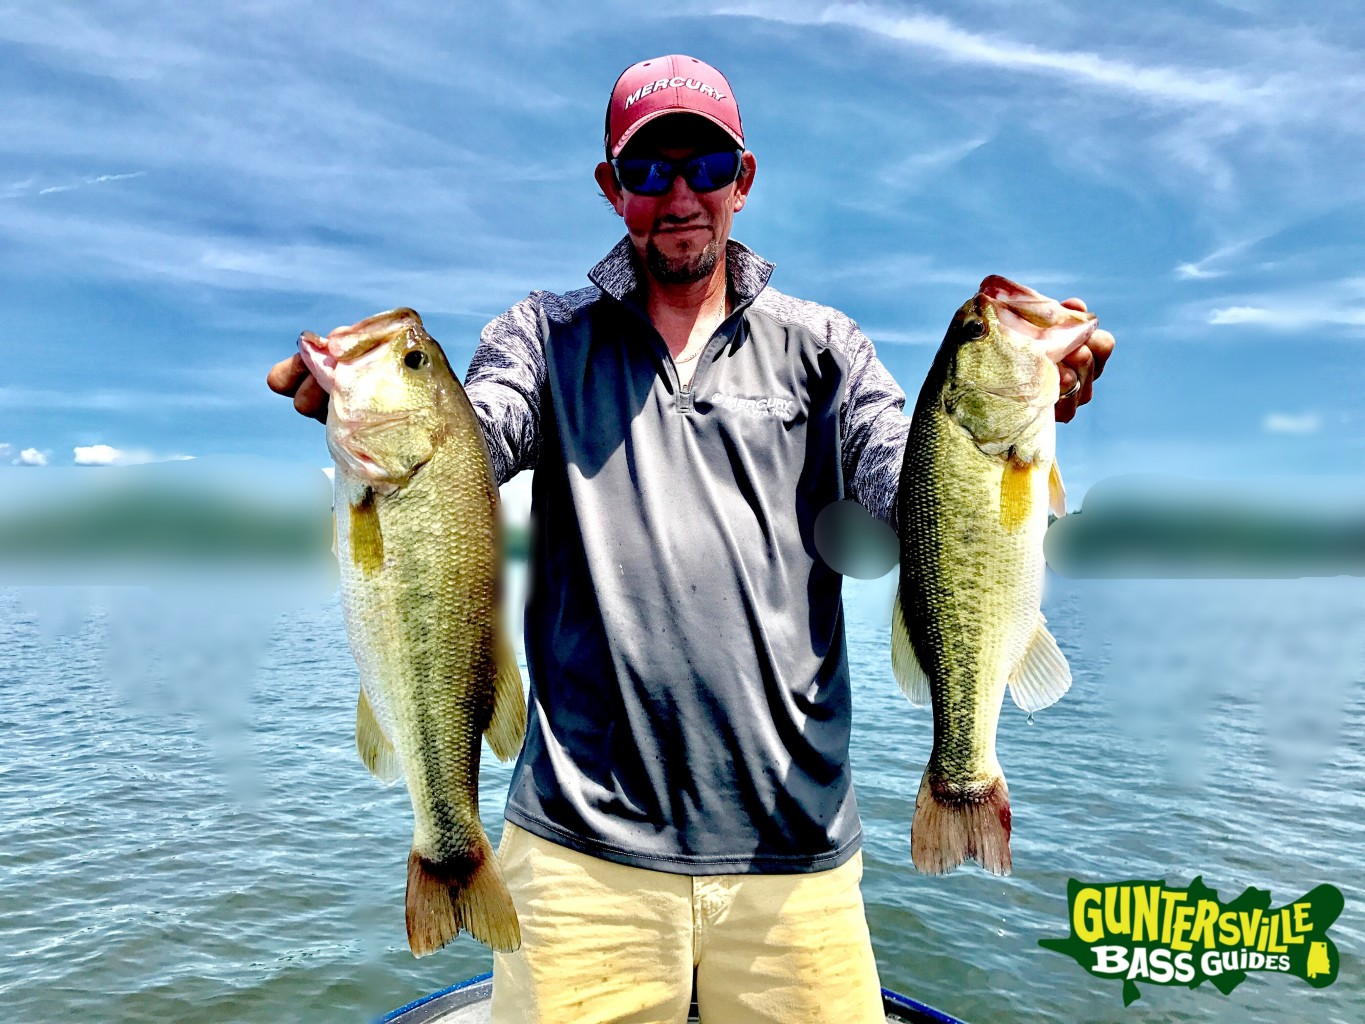 Guntersville Bass Fishing Guides